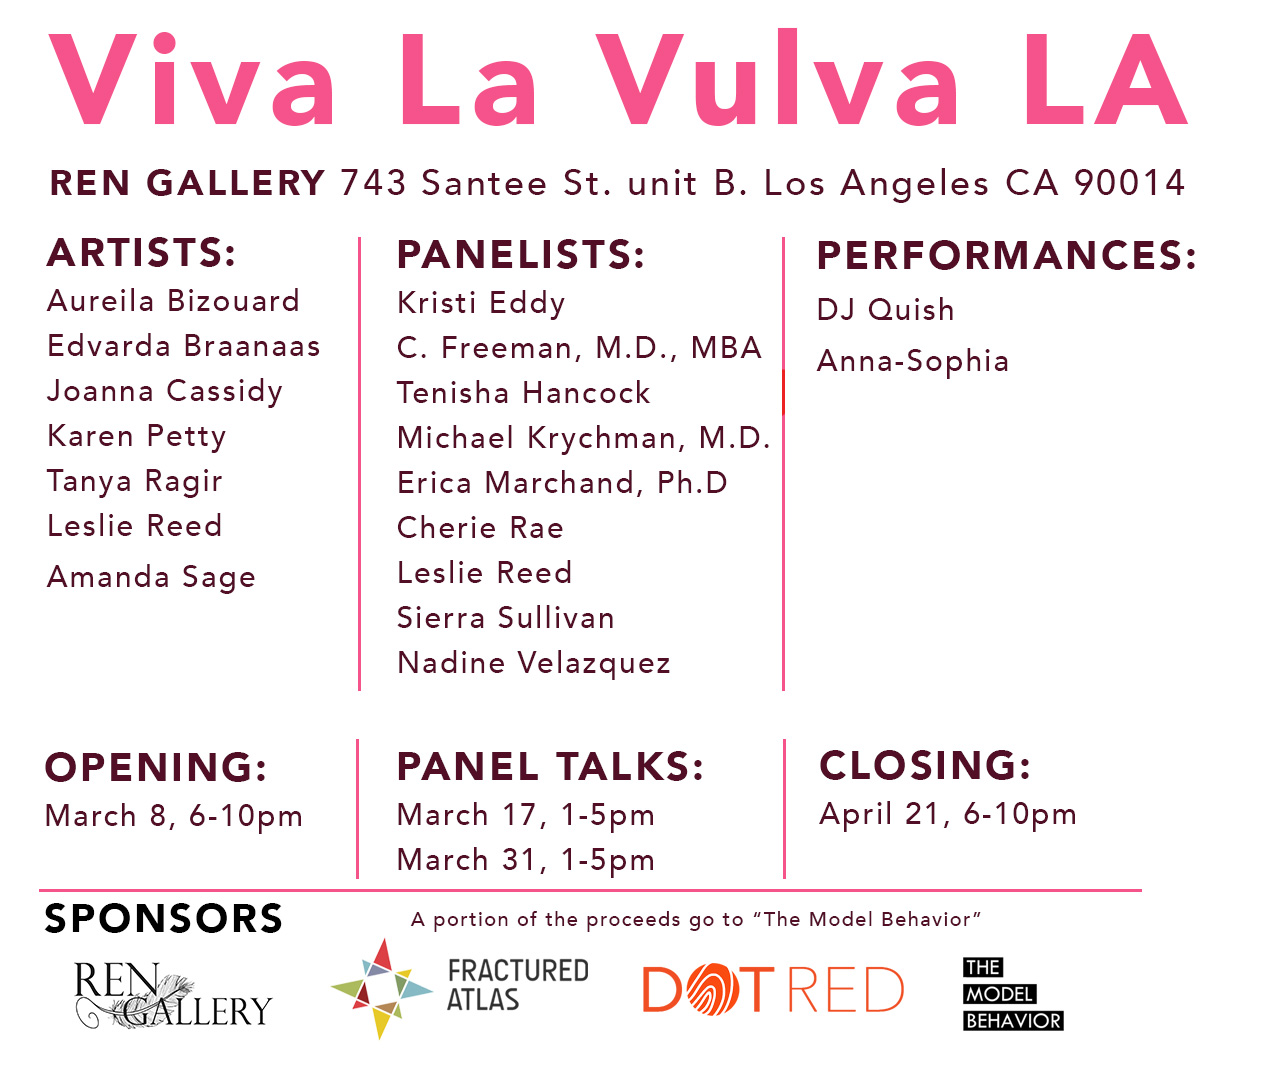 We are proud to be a part of the Viva La Vulva team to celebrate the women  of Los Angeles during March, Women's History Month.